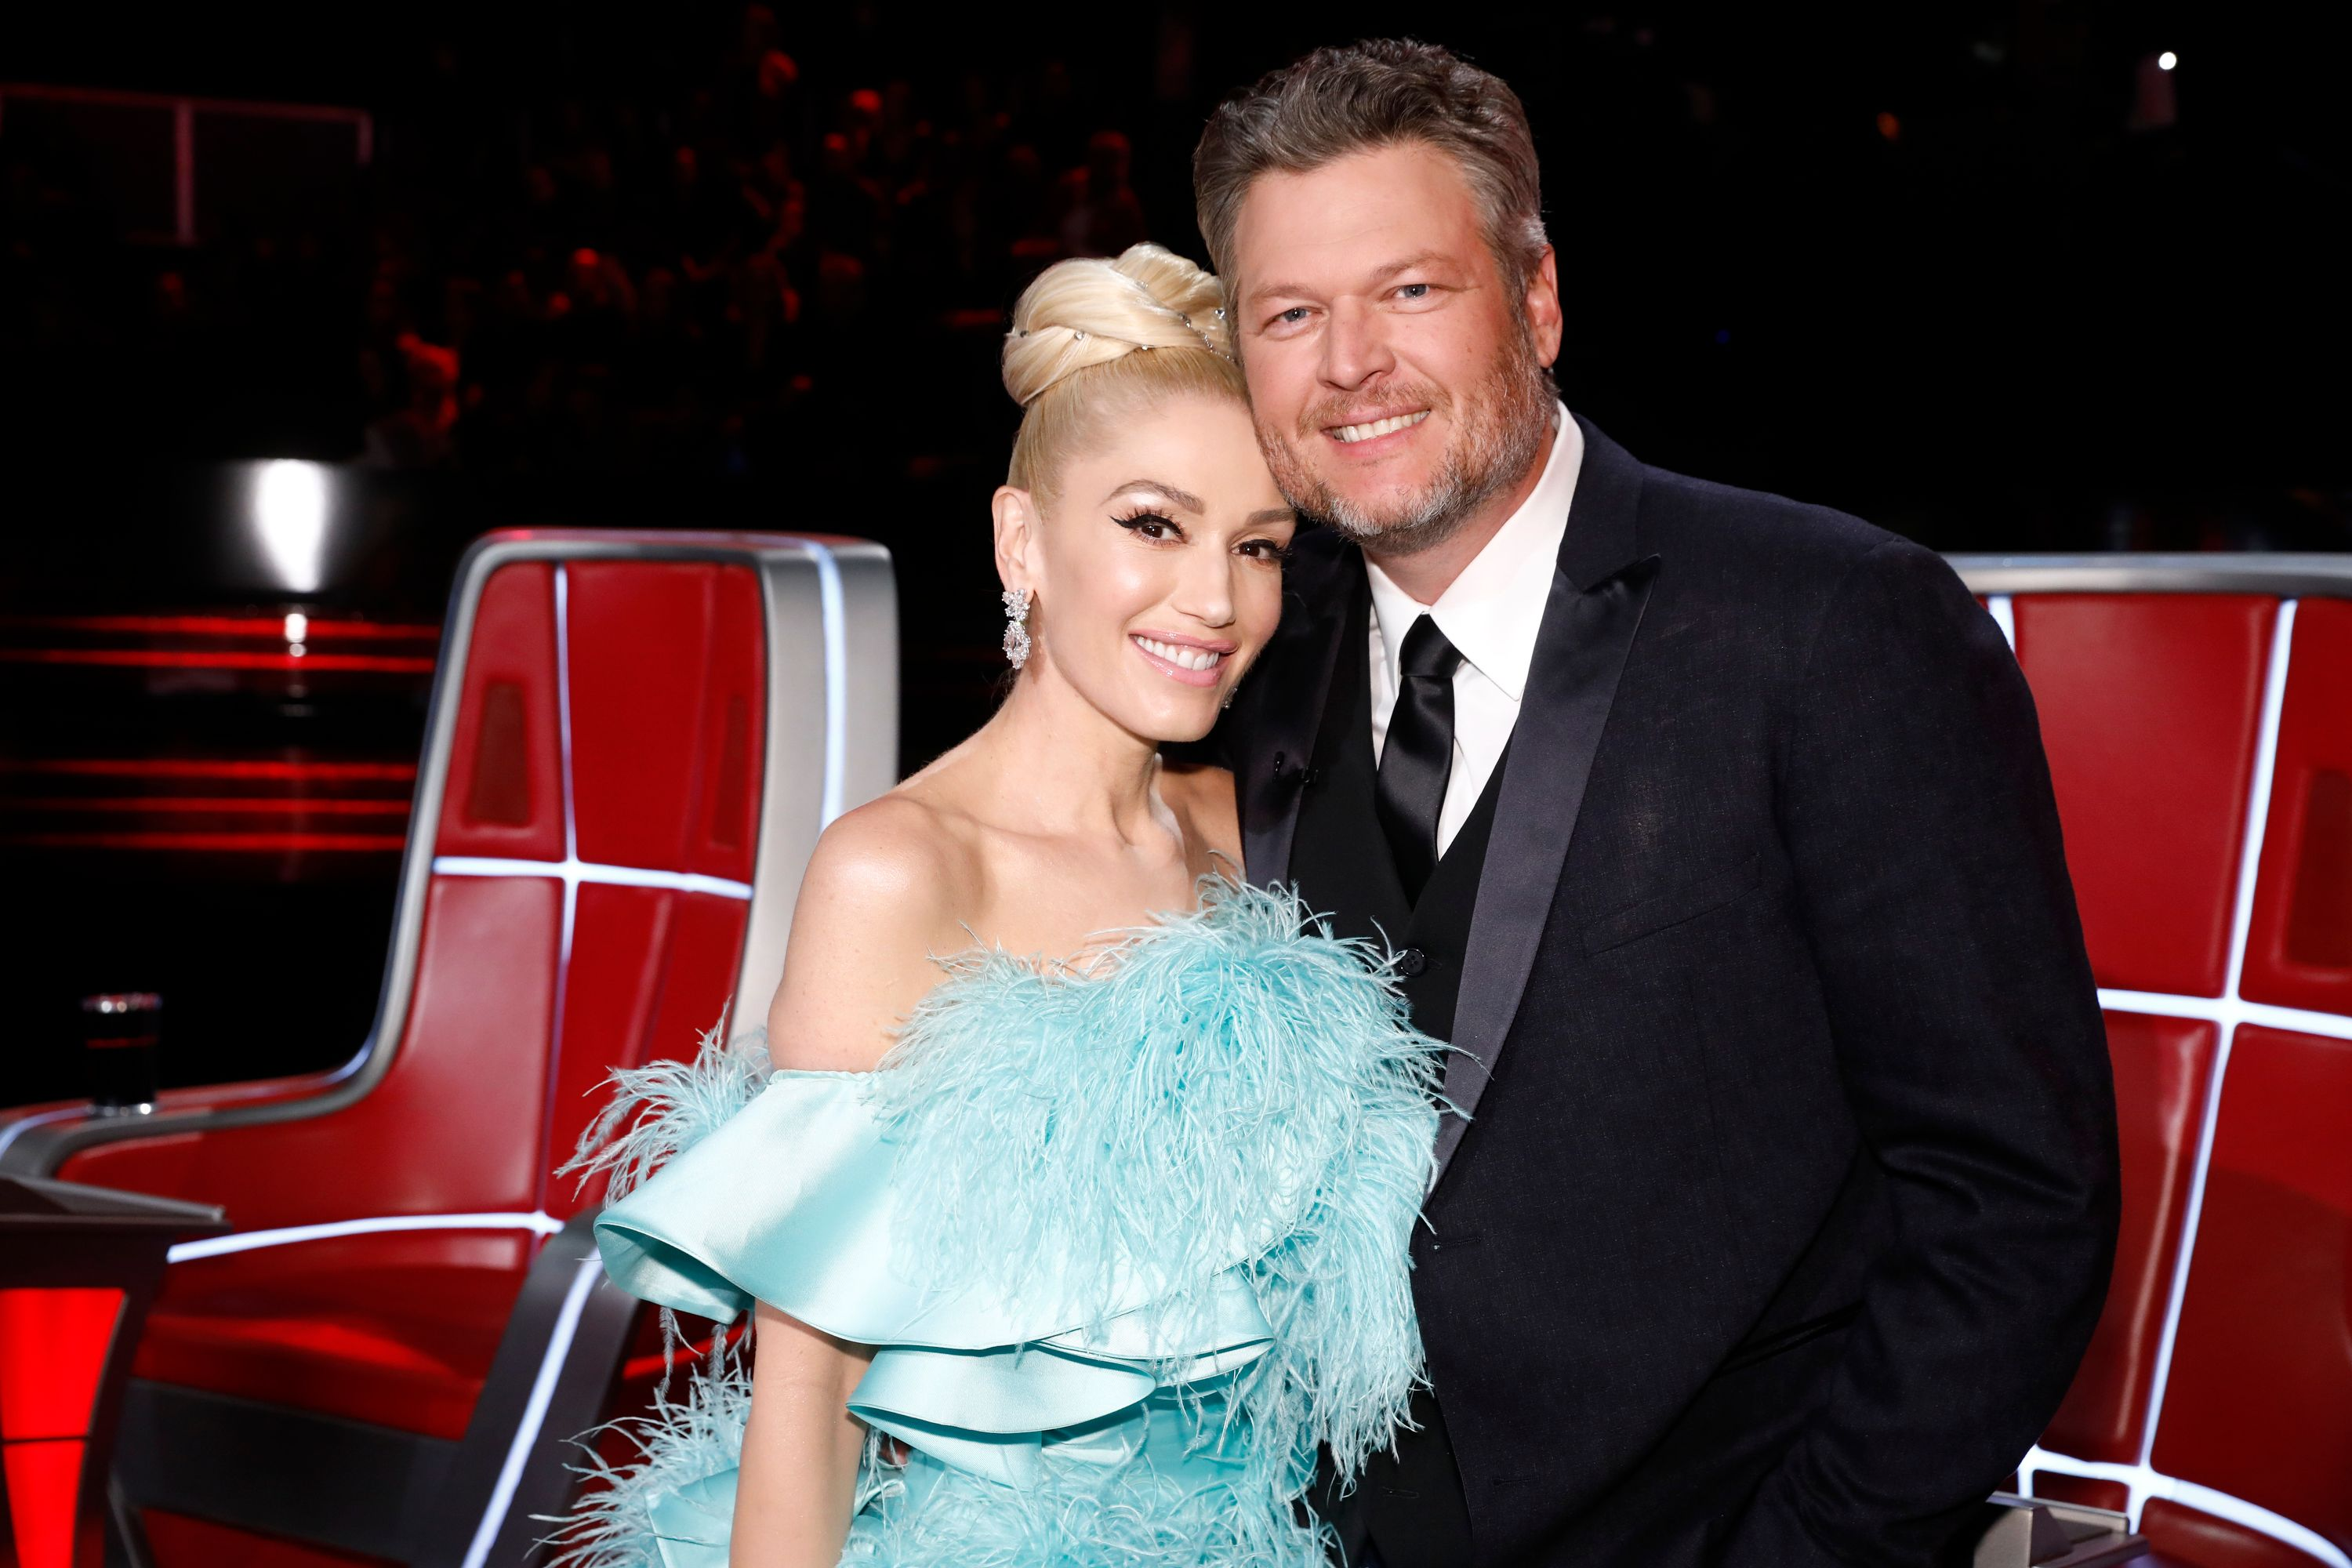 Gwen Stefani (left) poses with Blake Shelton (right) on The Voice set